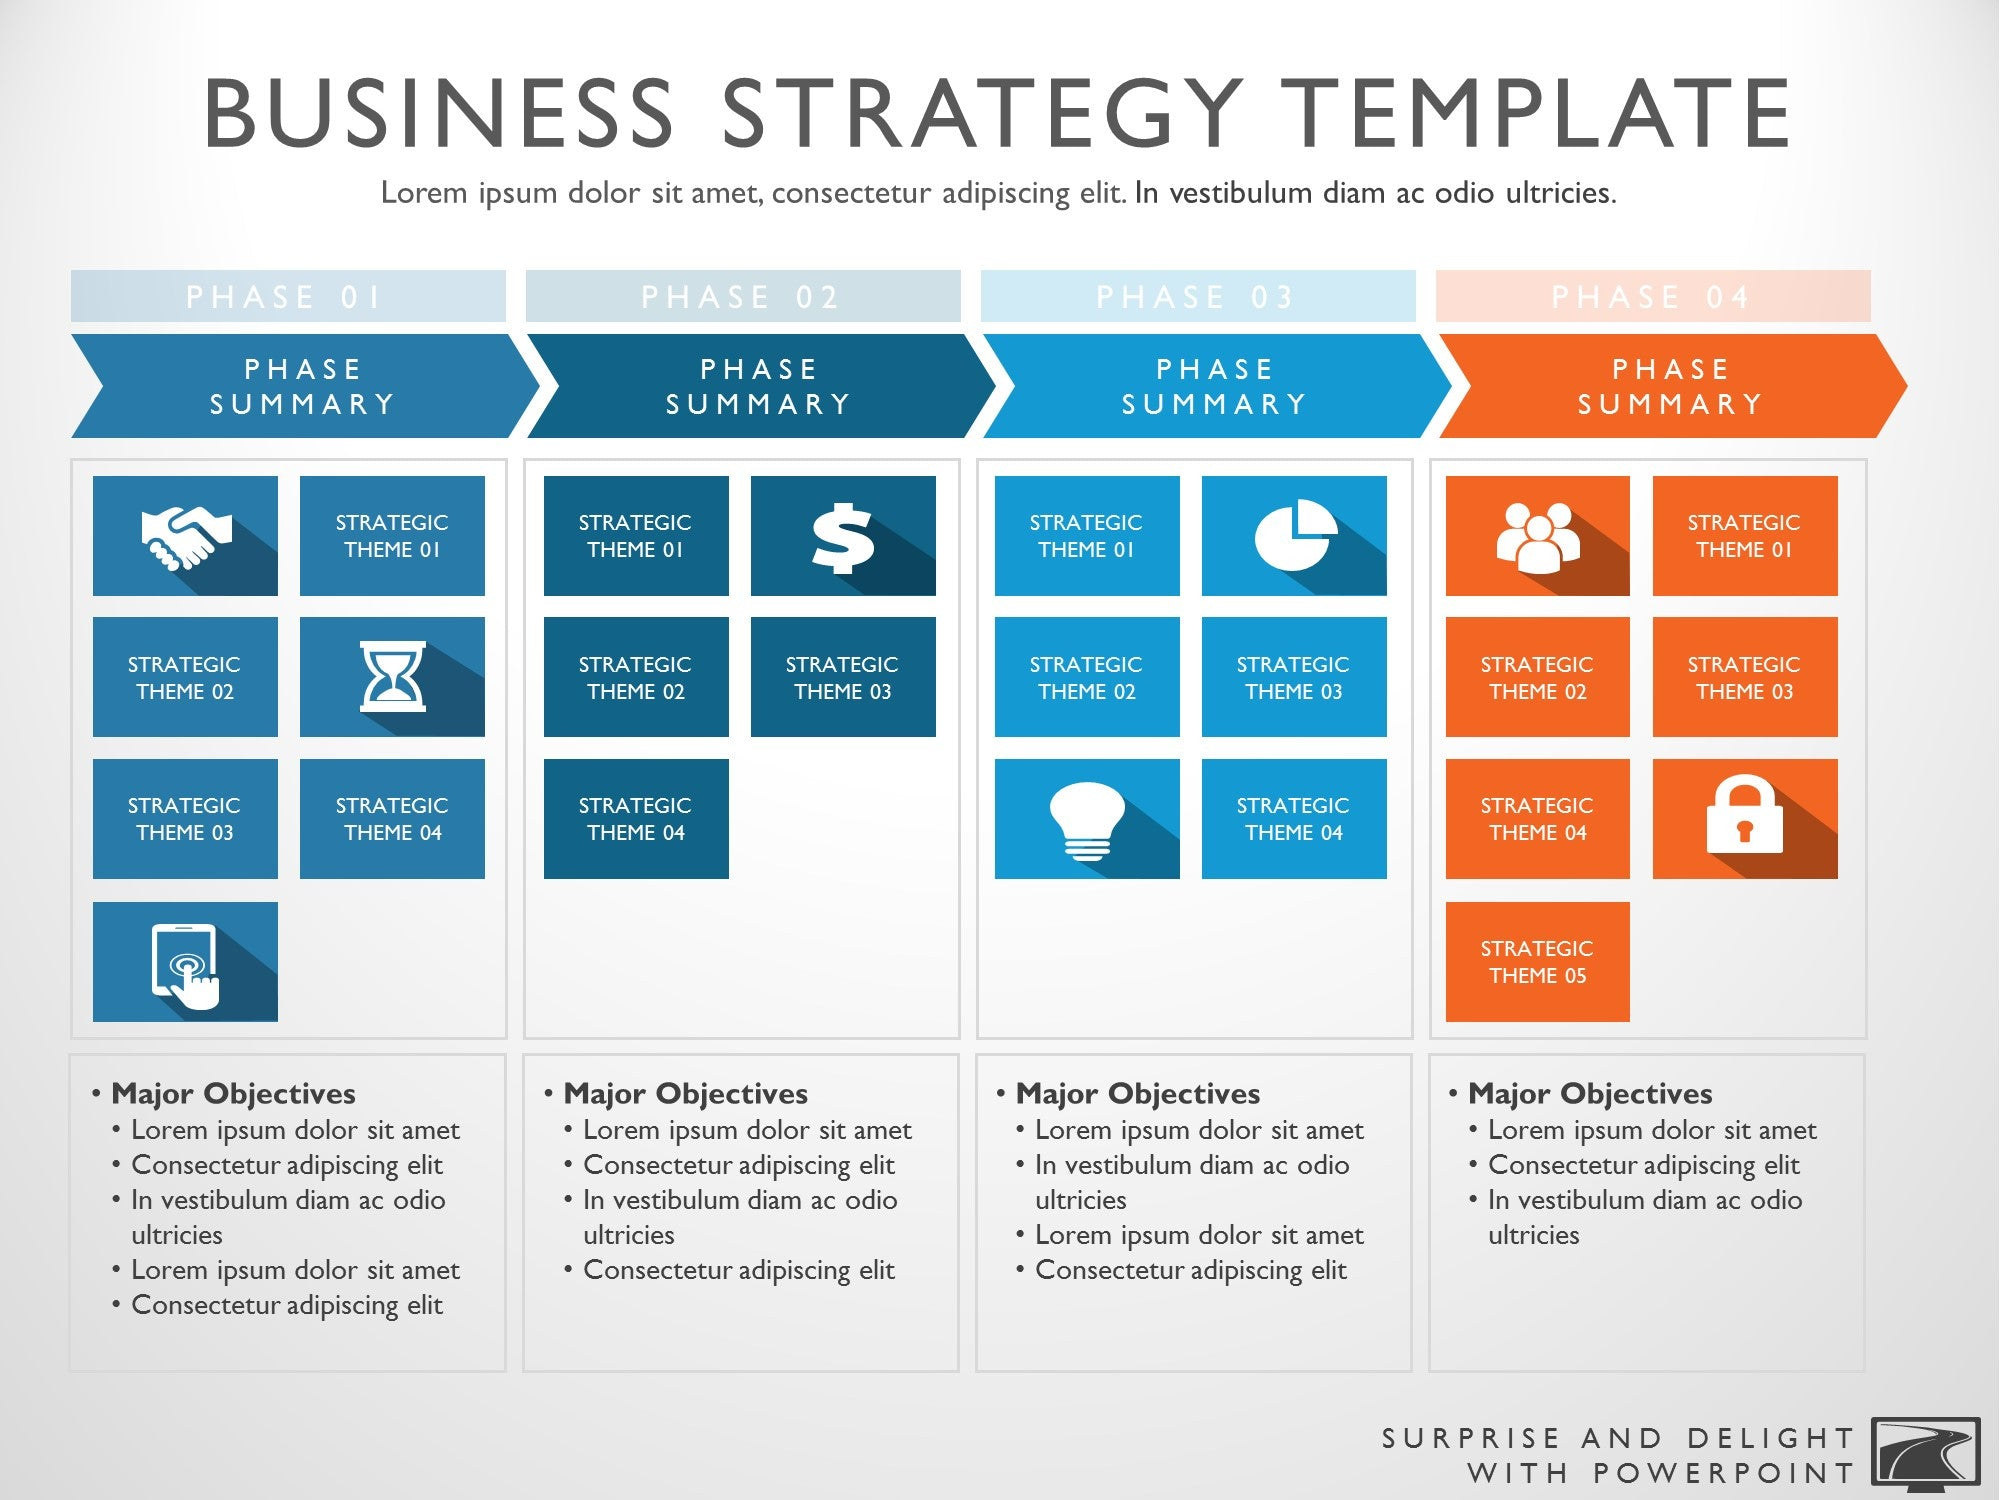 BusinessStrategySlidejpgv - Strategy template